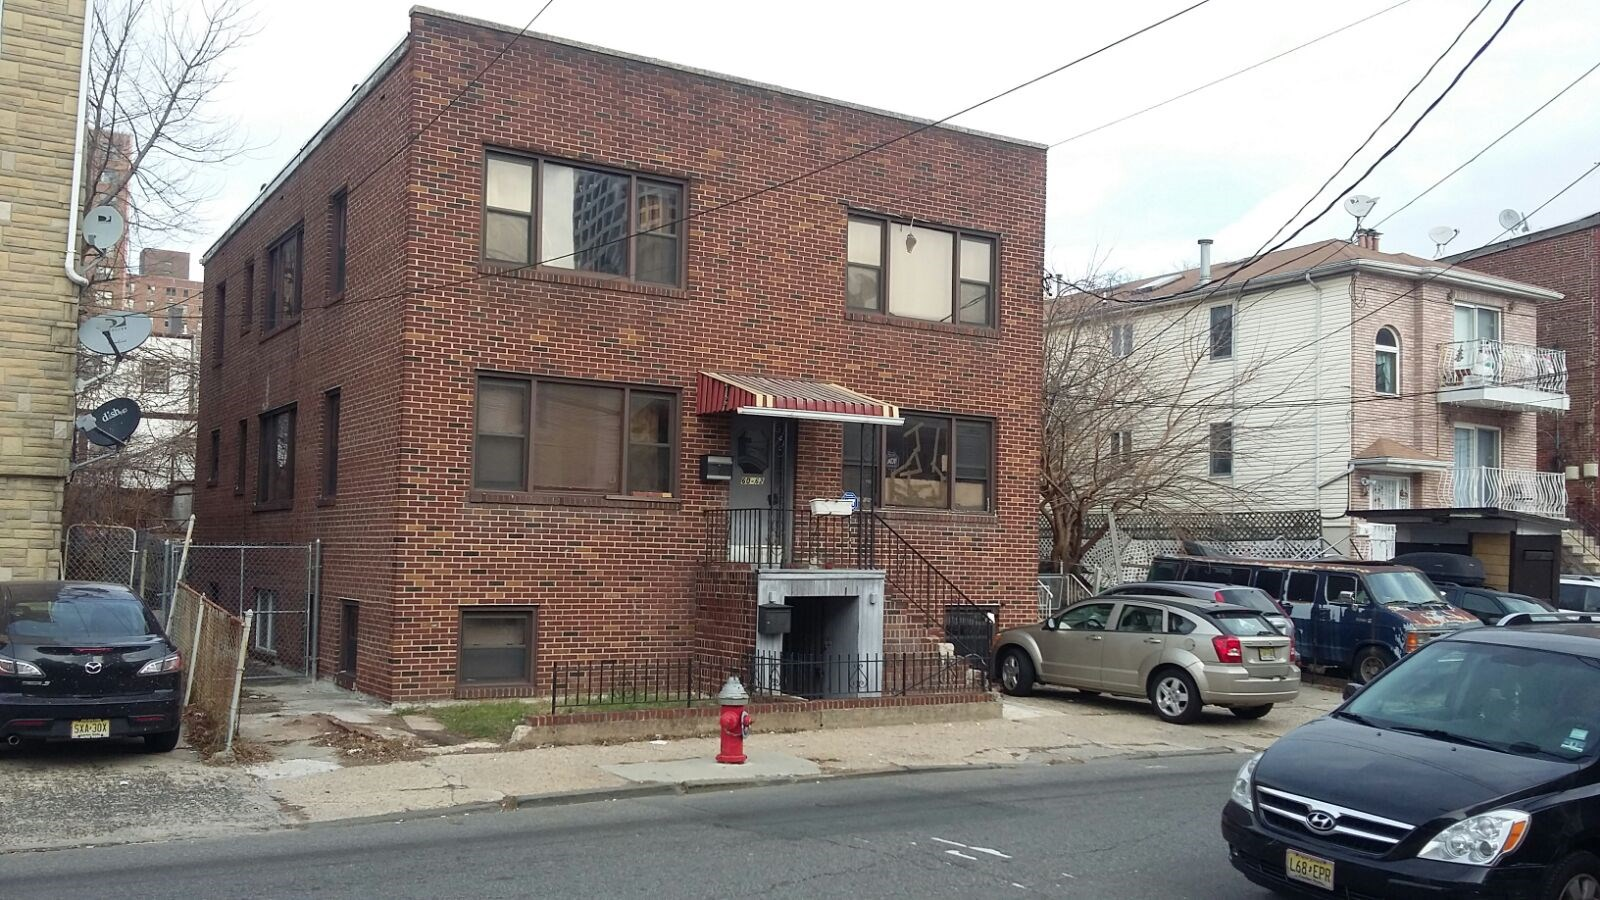 1 Bedroom Apt At Journal Square Jersey City 1 Min Walk To Path Train